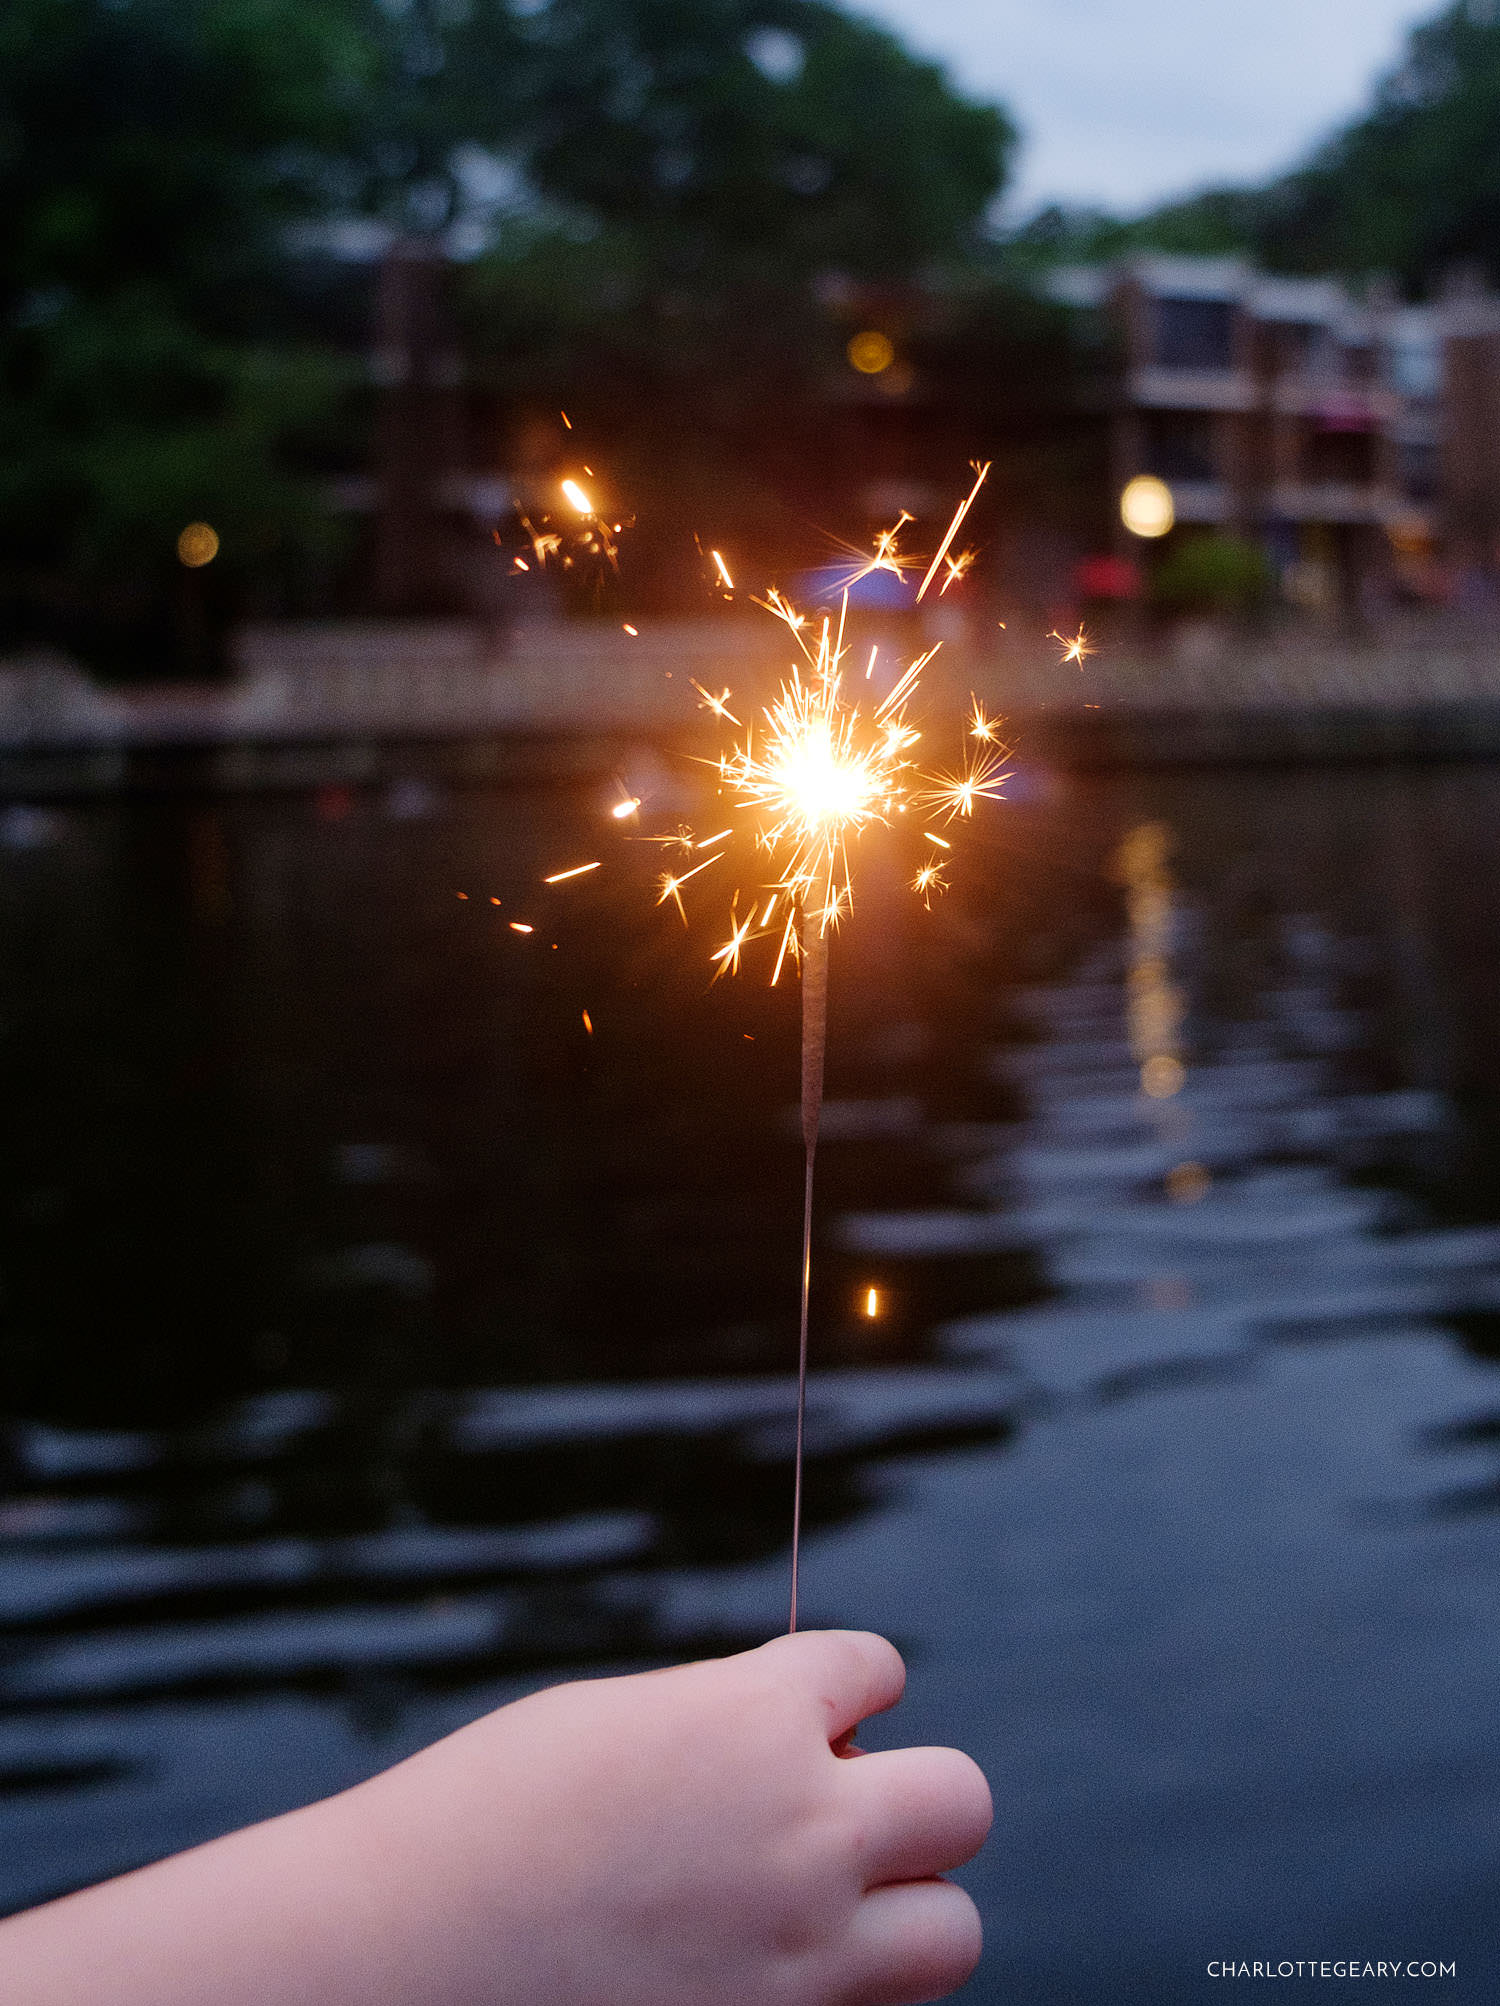 Sparkler on the Fourth of July